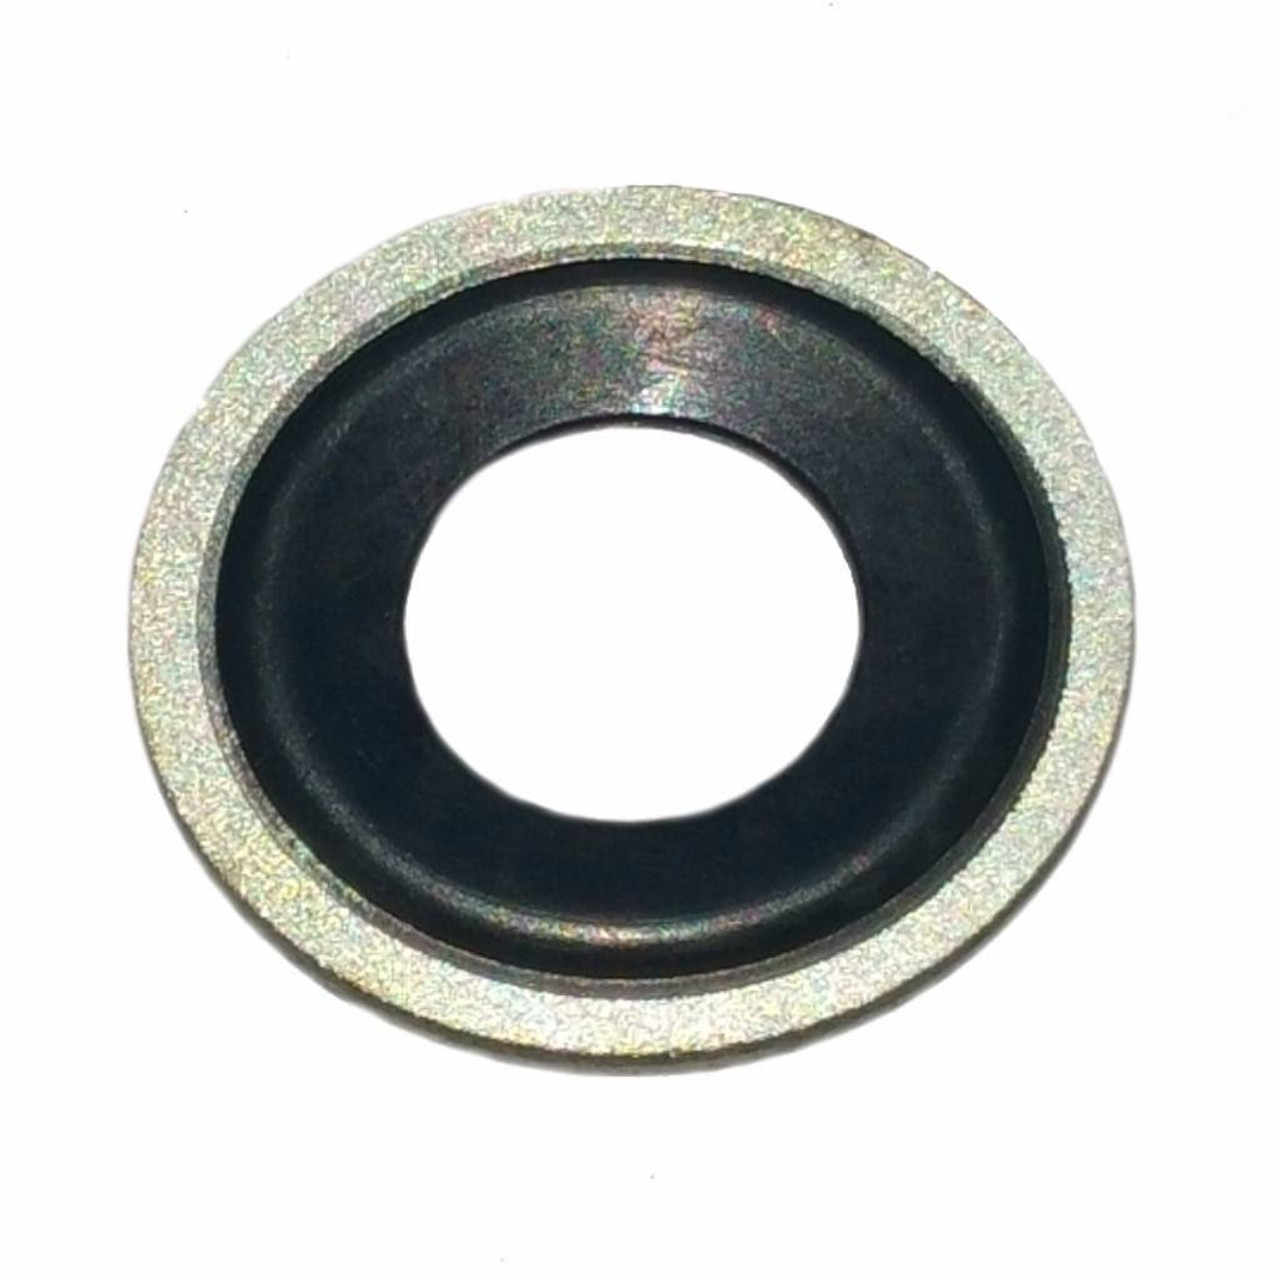 Metal Rubber Oil Drain Plug Gasket M12 from Buy Auto Supply - Replaces Dorman 097-021 65274 097 021